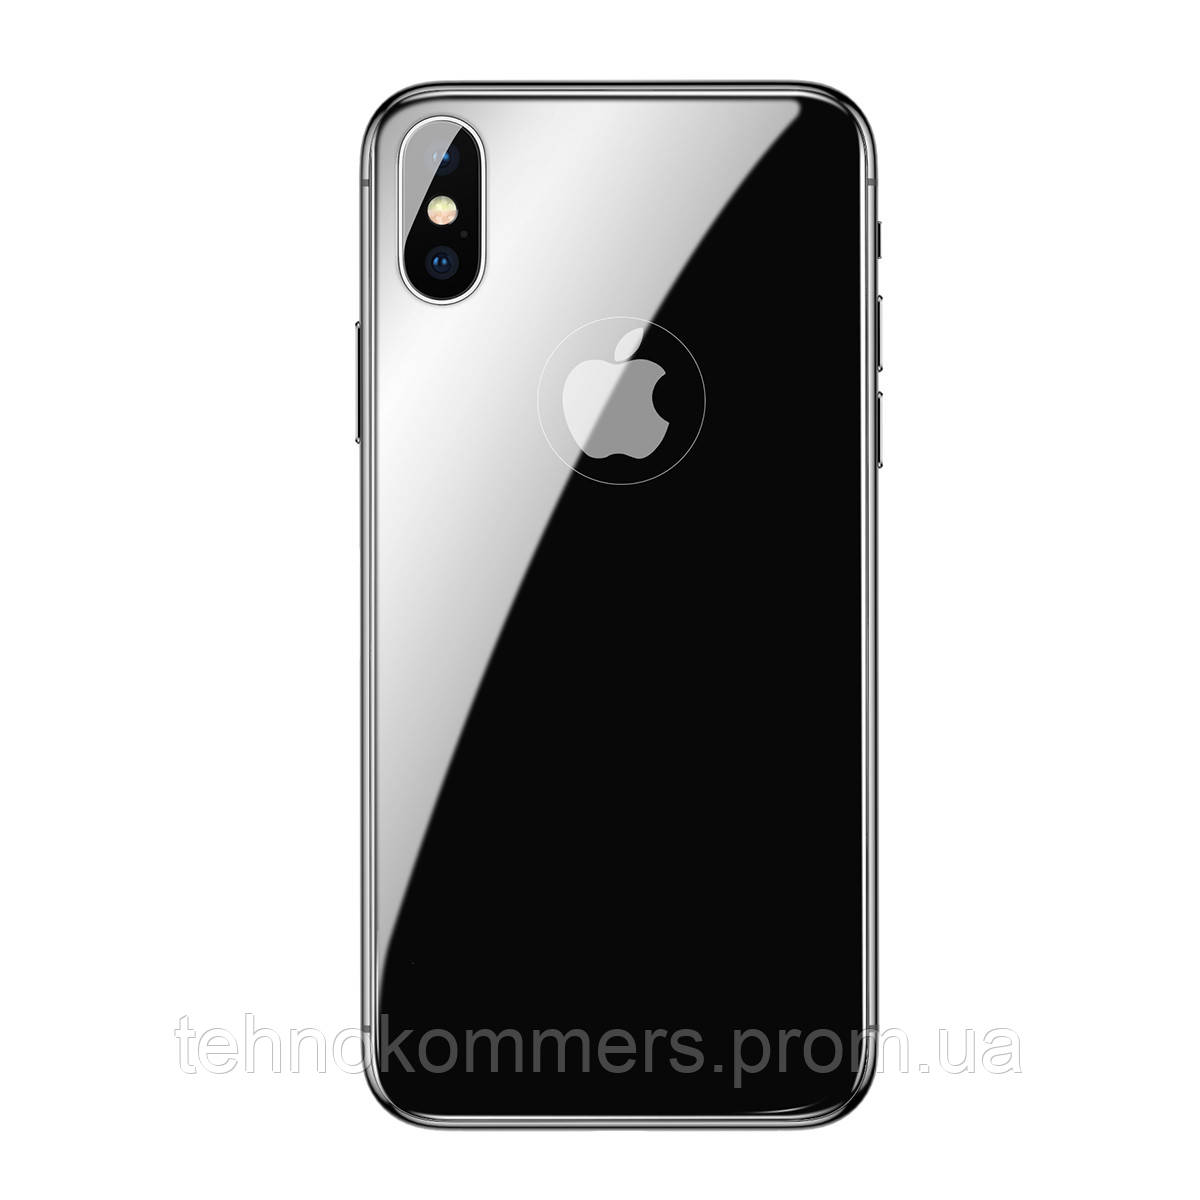 Захисне скло Baseus 0.3mm All-coverage Back Glass Space gray for iPhone X